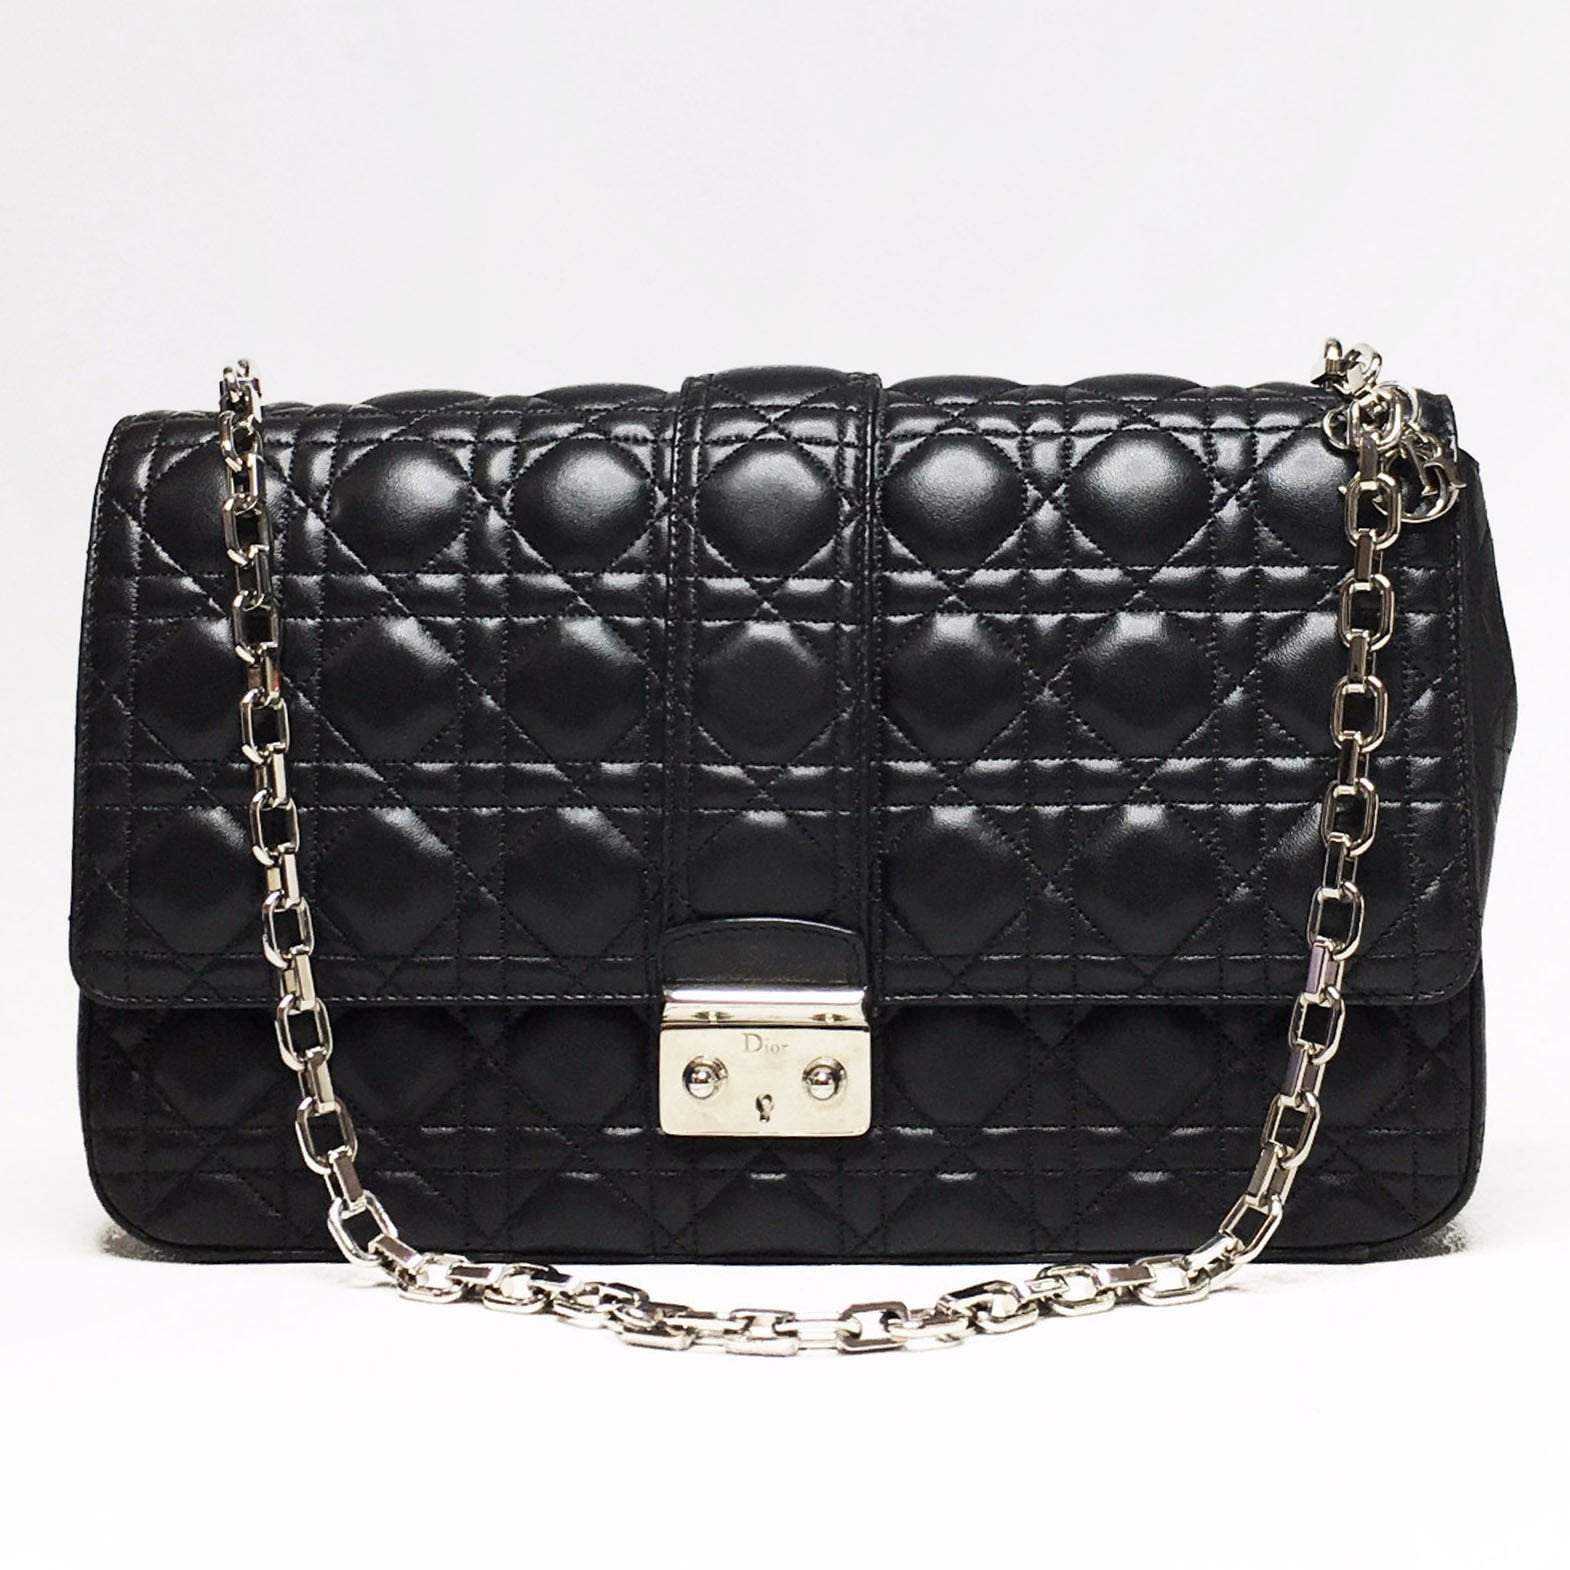 1628e6eba1b7 Christian Dior Black Cannage Quilted Lambskin Leather Miss Large ...